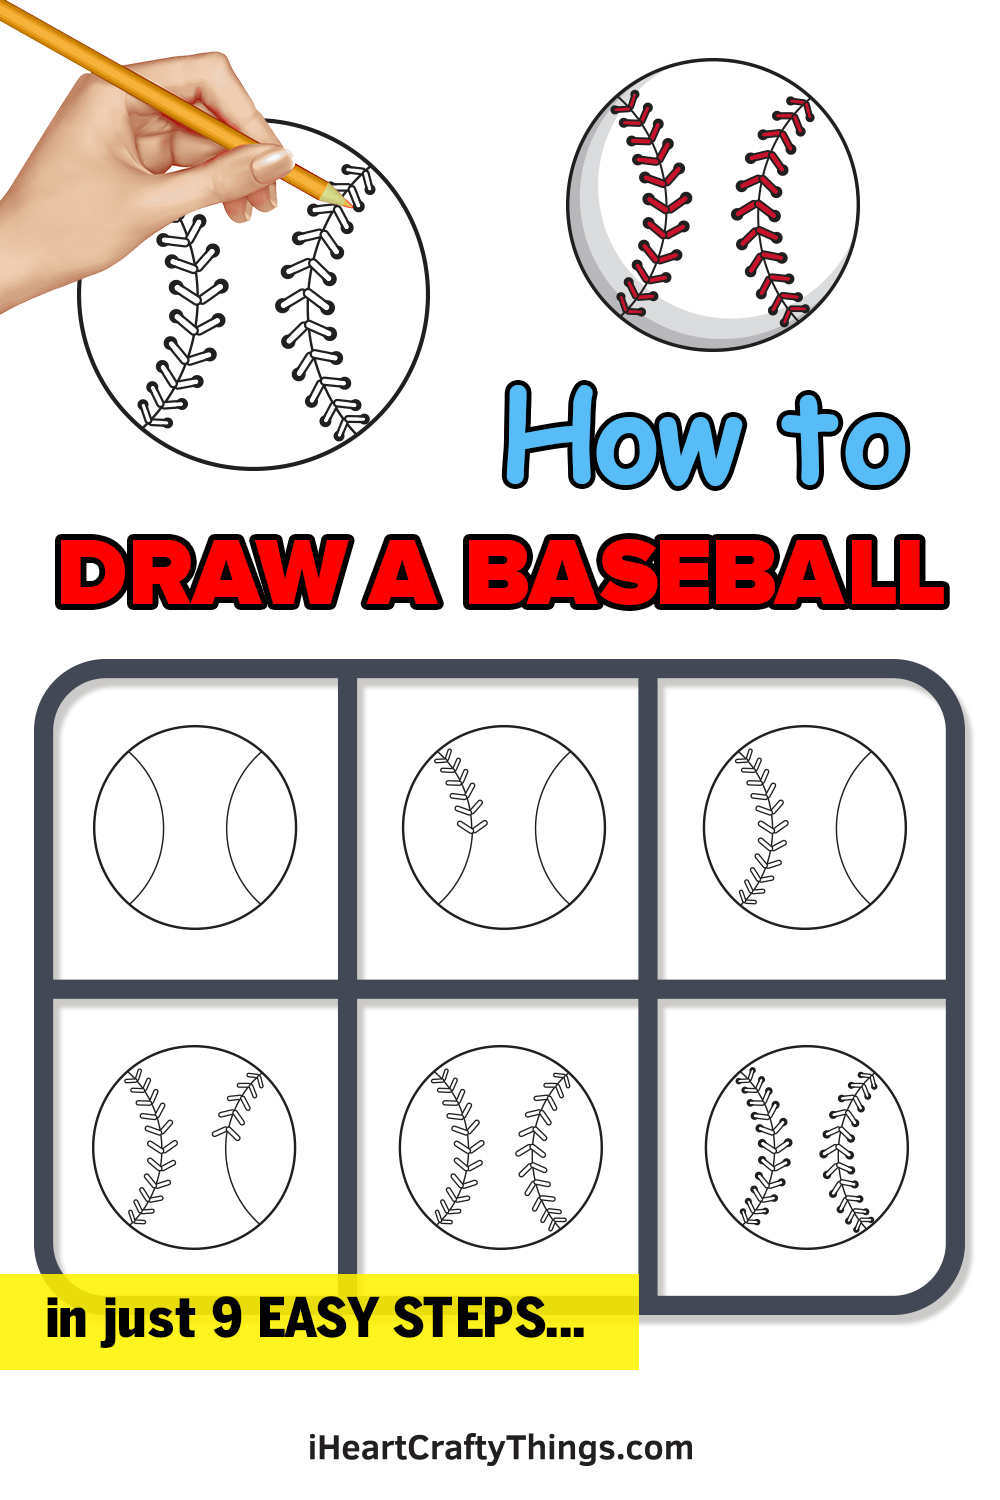 how to draw a baseball in 9 easy steps